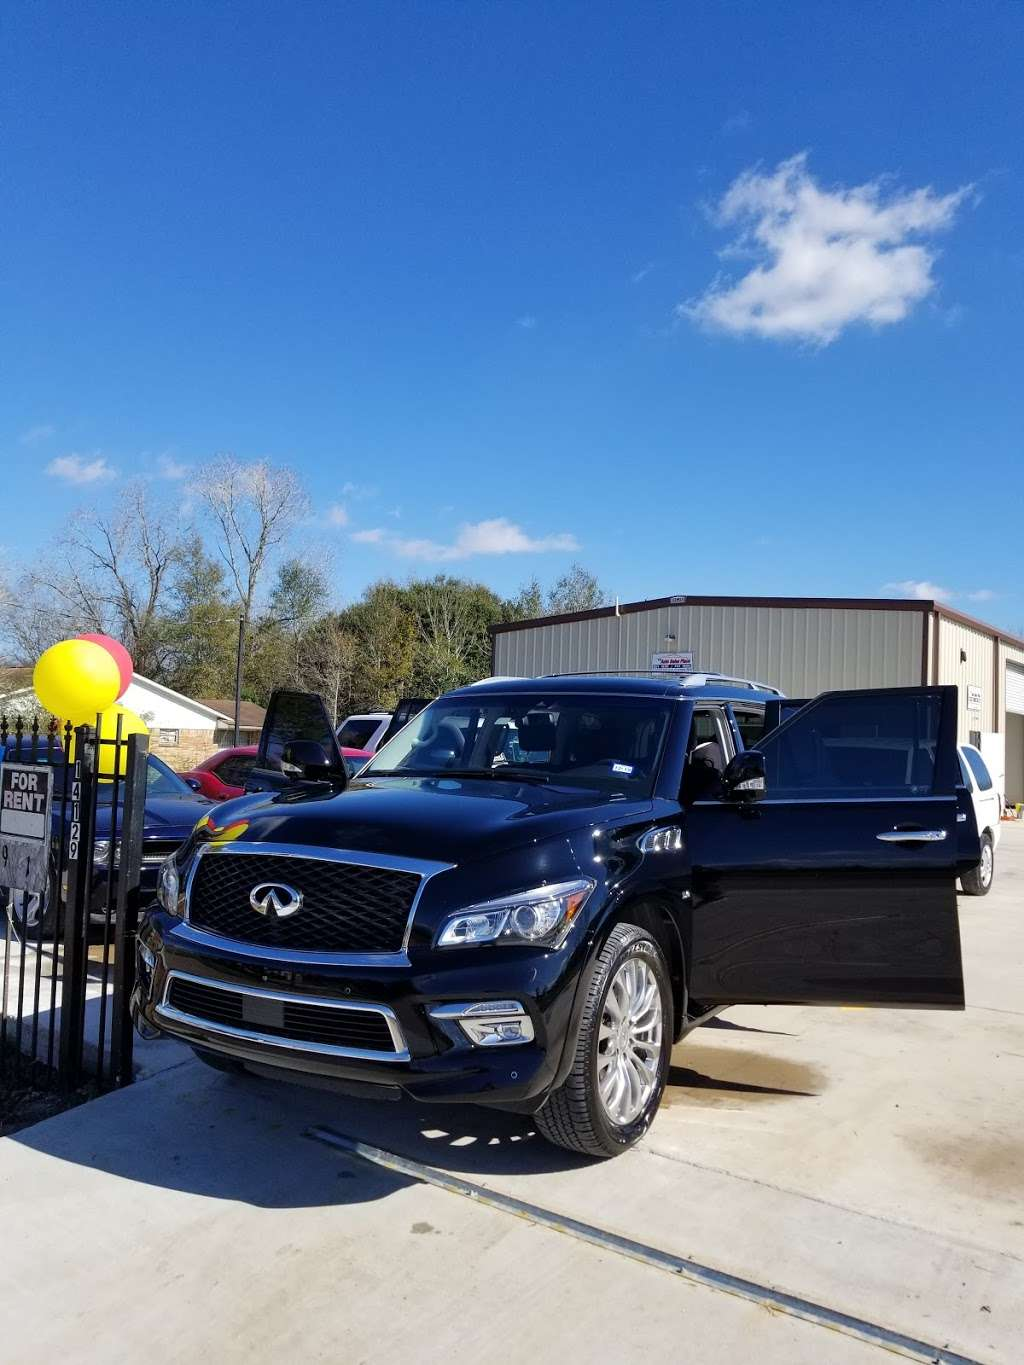 The Auto Sales Place and Hand Car Wash - car dealer  | Photo 6 of 10 | Address: 14129 Hiram Clarke Rd, Houston, TX 77045, USA | Phone: (832) 275-9116